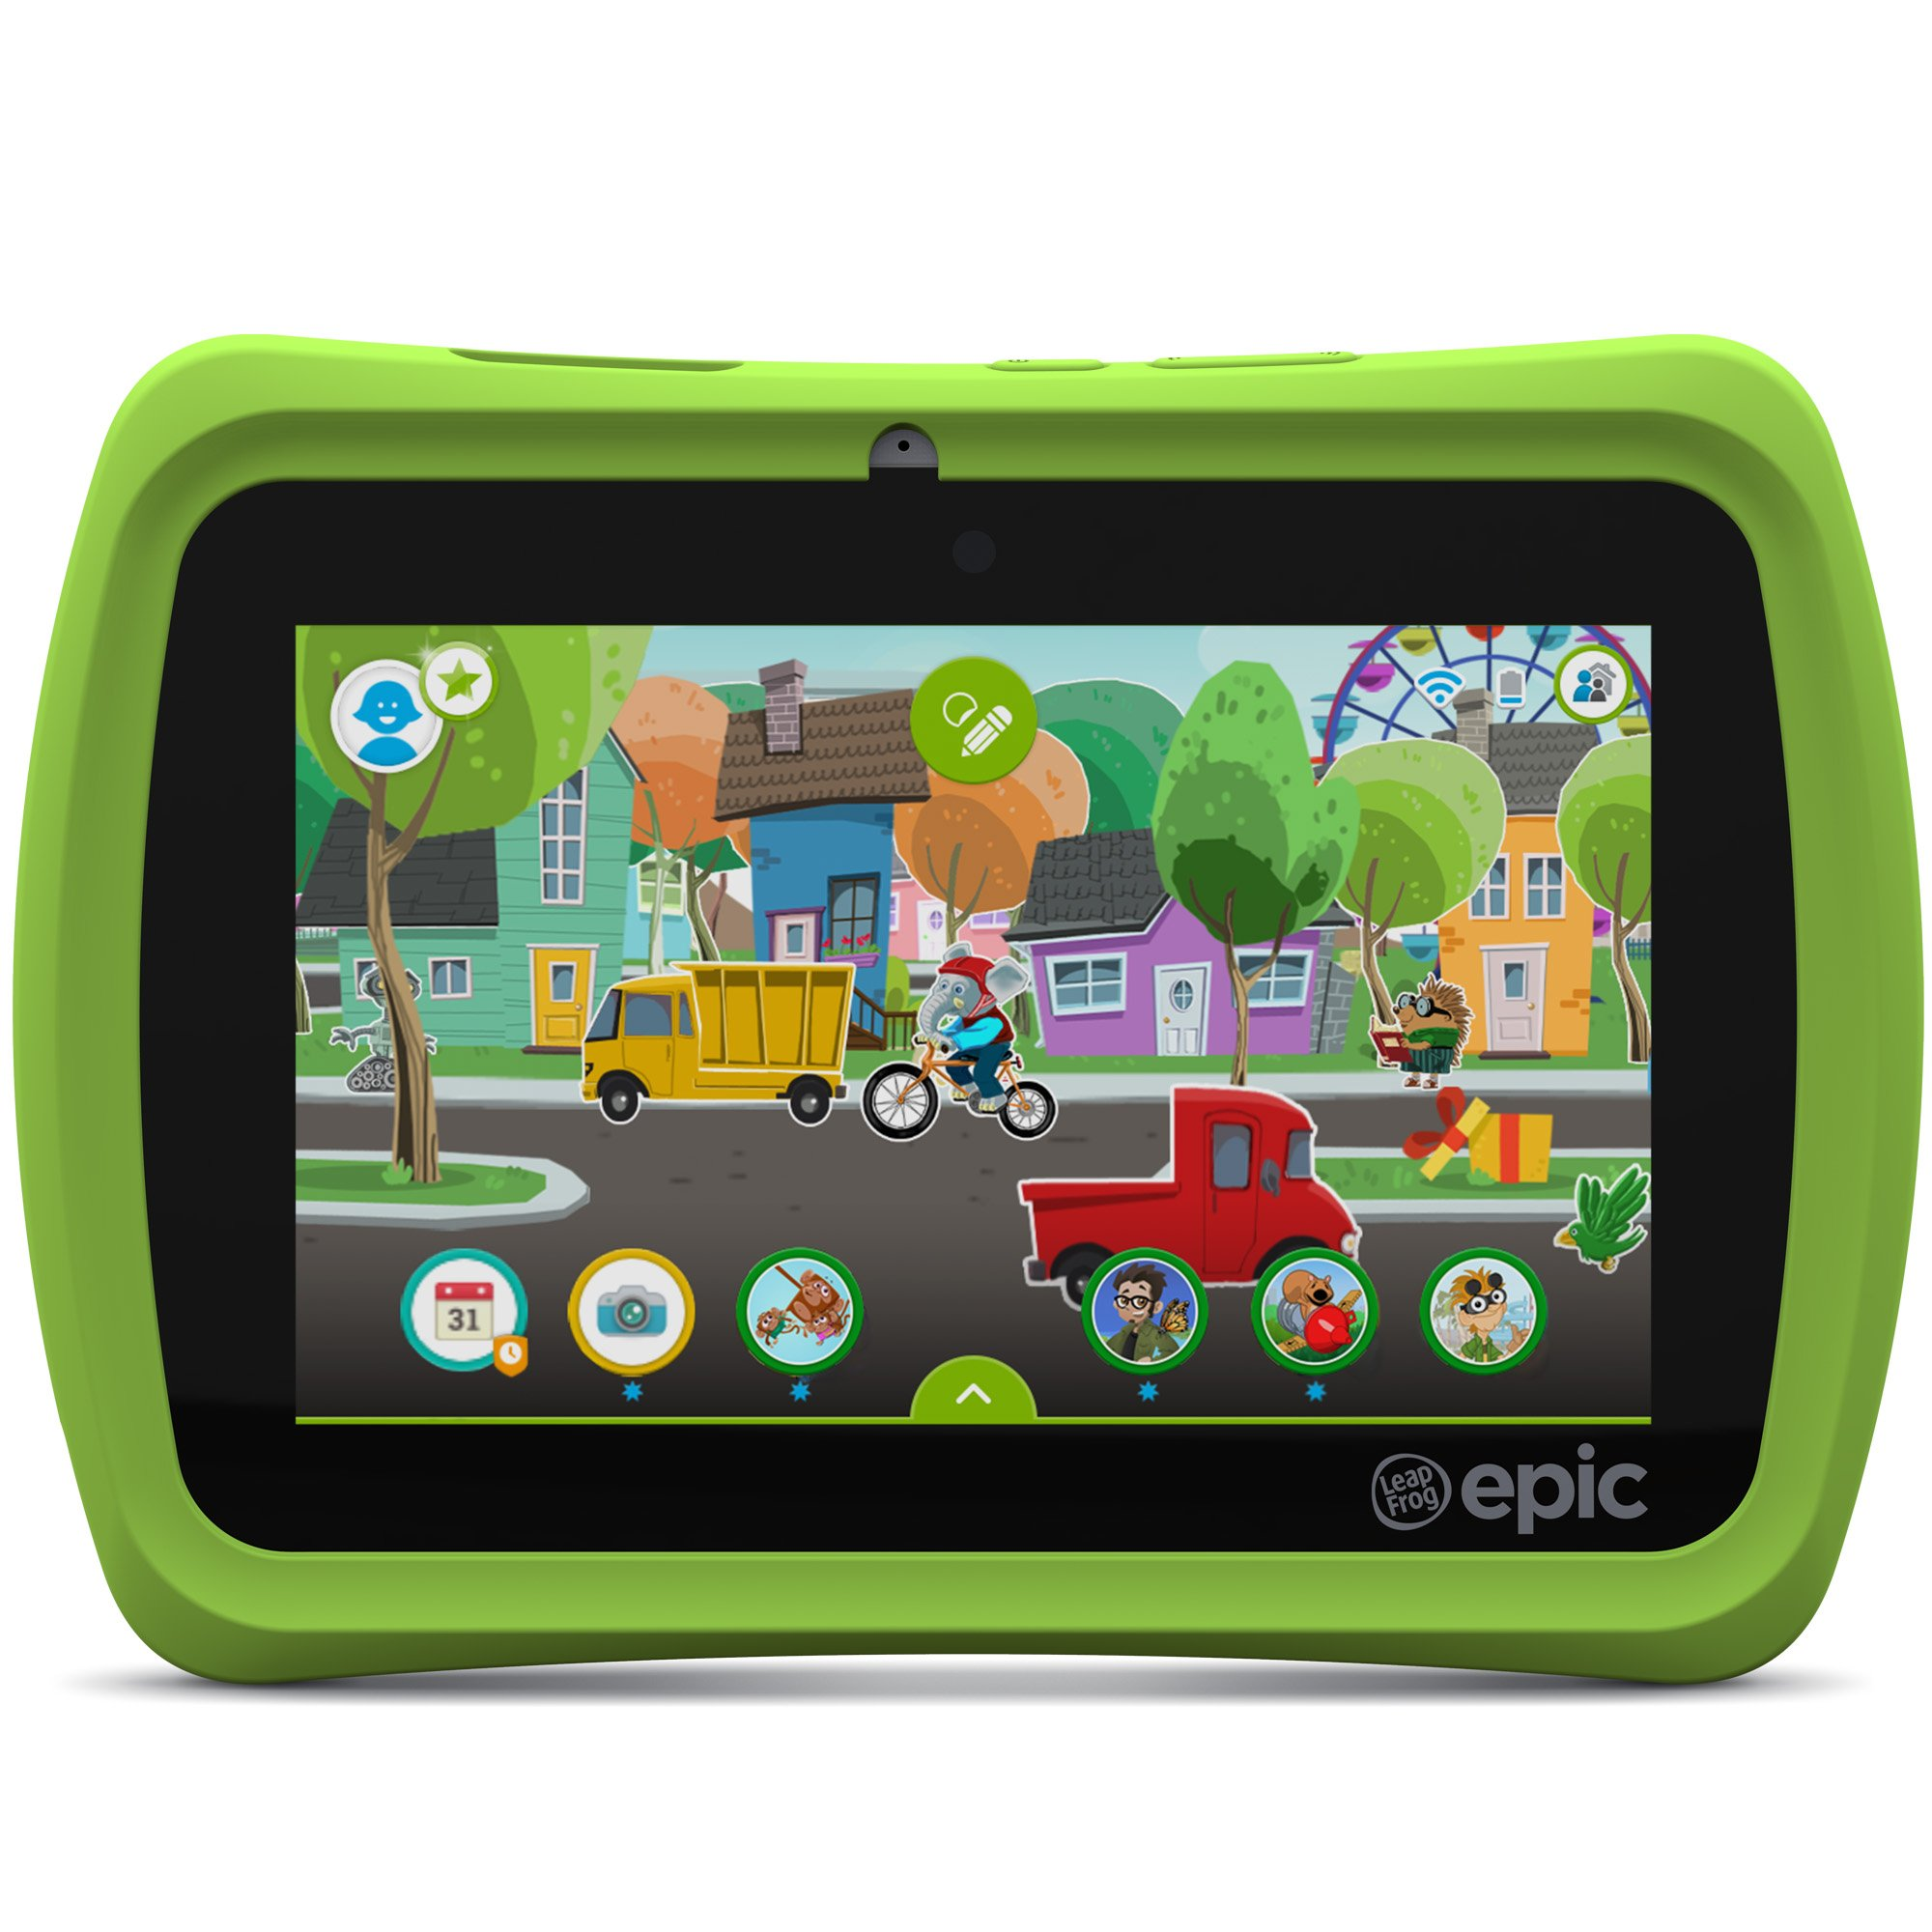 LeapFrog Epic 7'' Android-based Kids Tablet 16GB, Green by LeapFrog